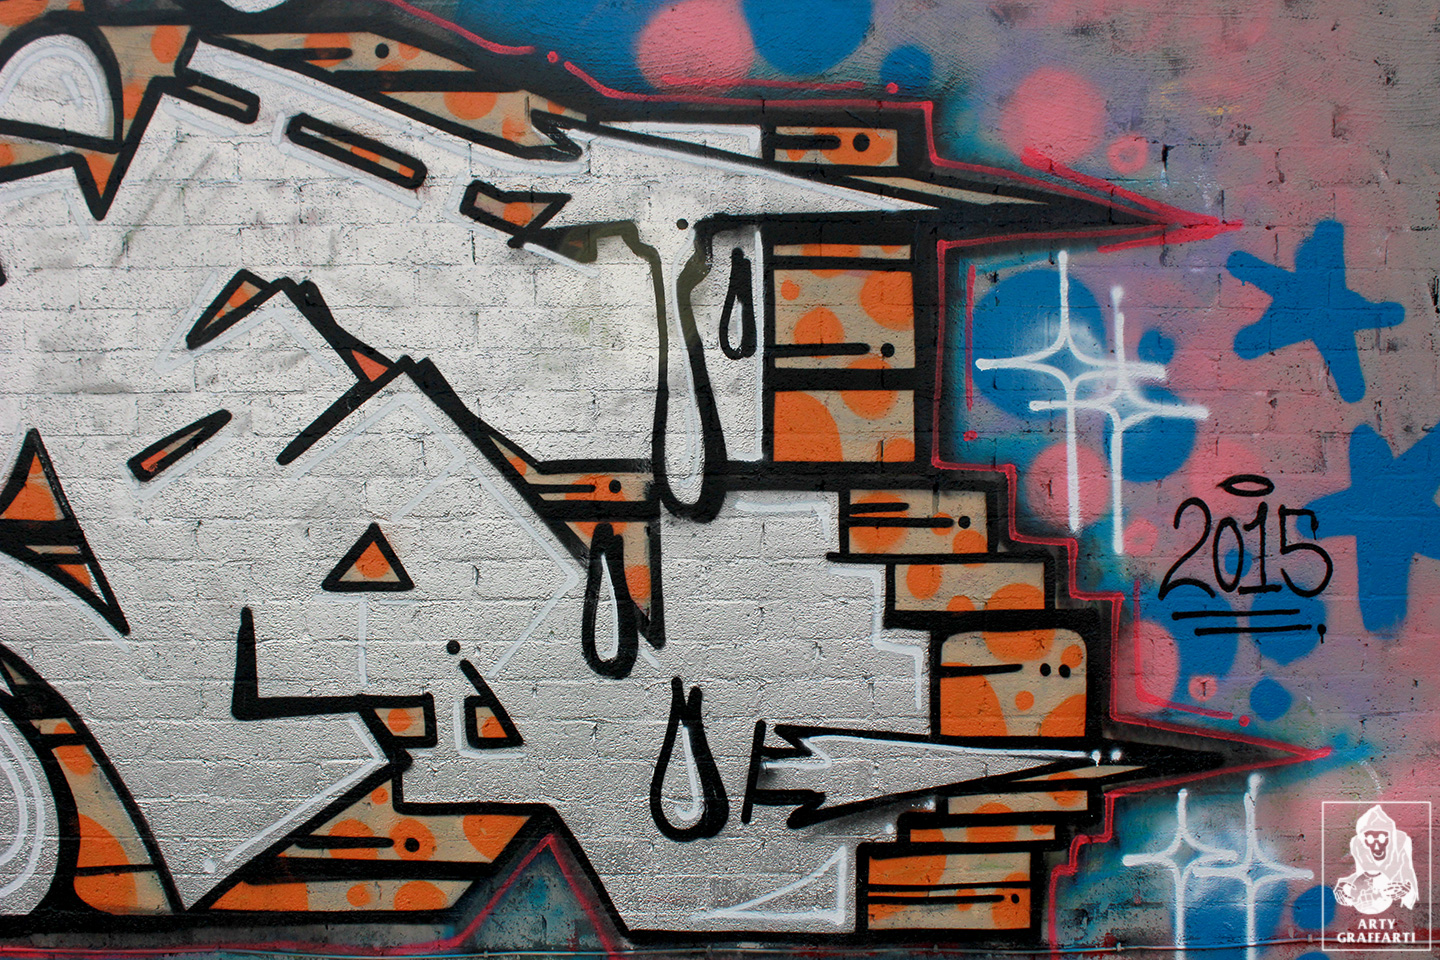 Pokie-Eye-Fitzroy-Graffiti-Melbourne-Arty-Graffarti8